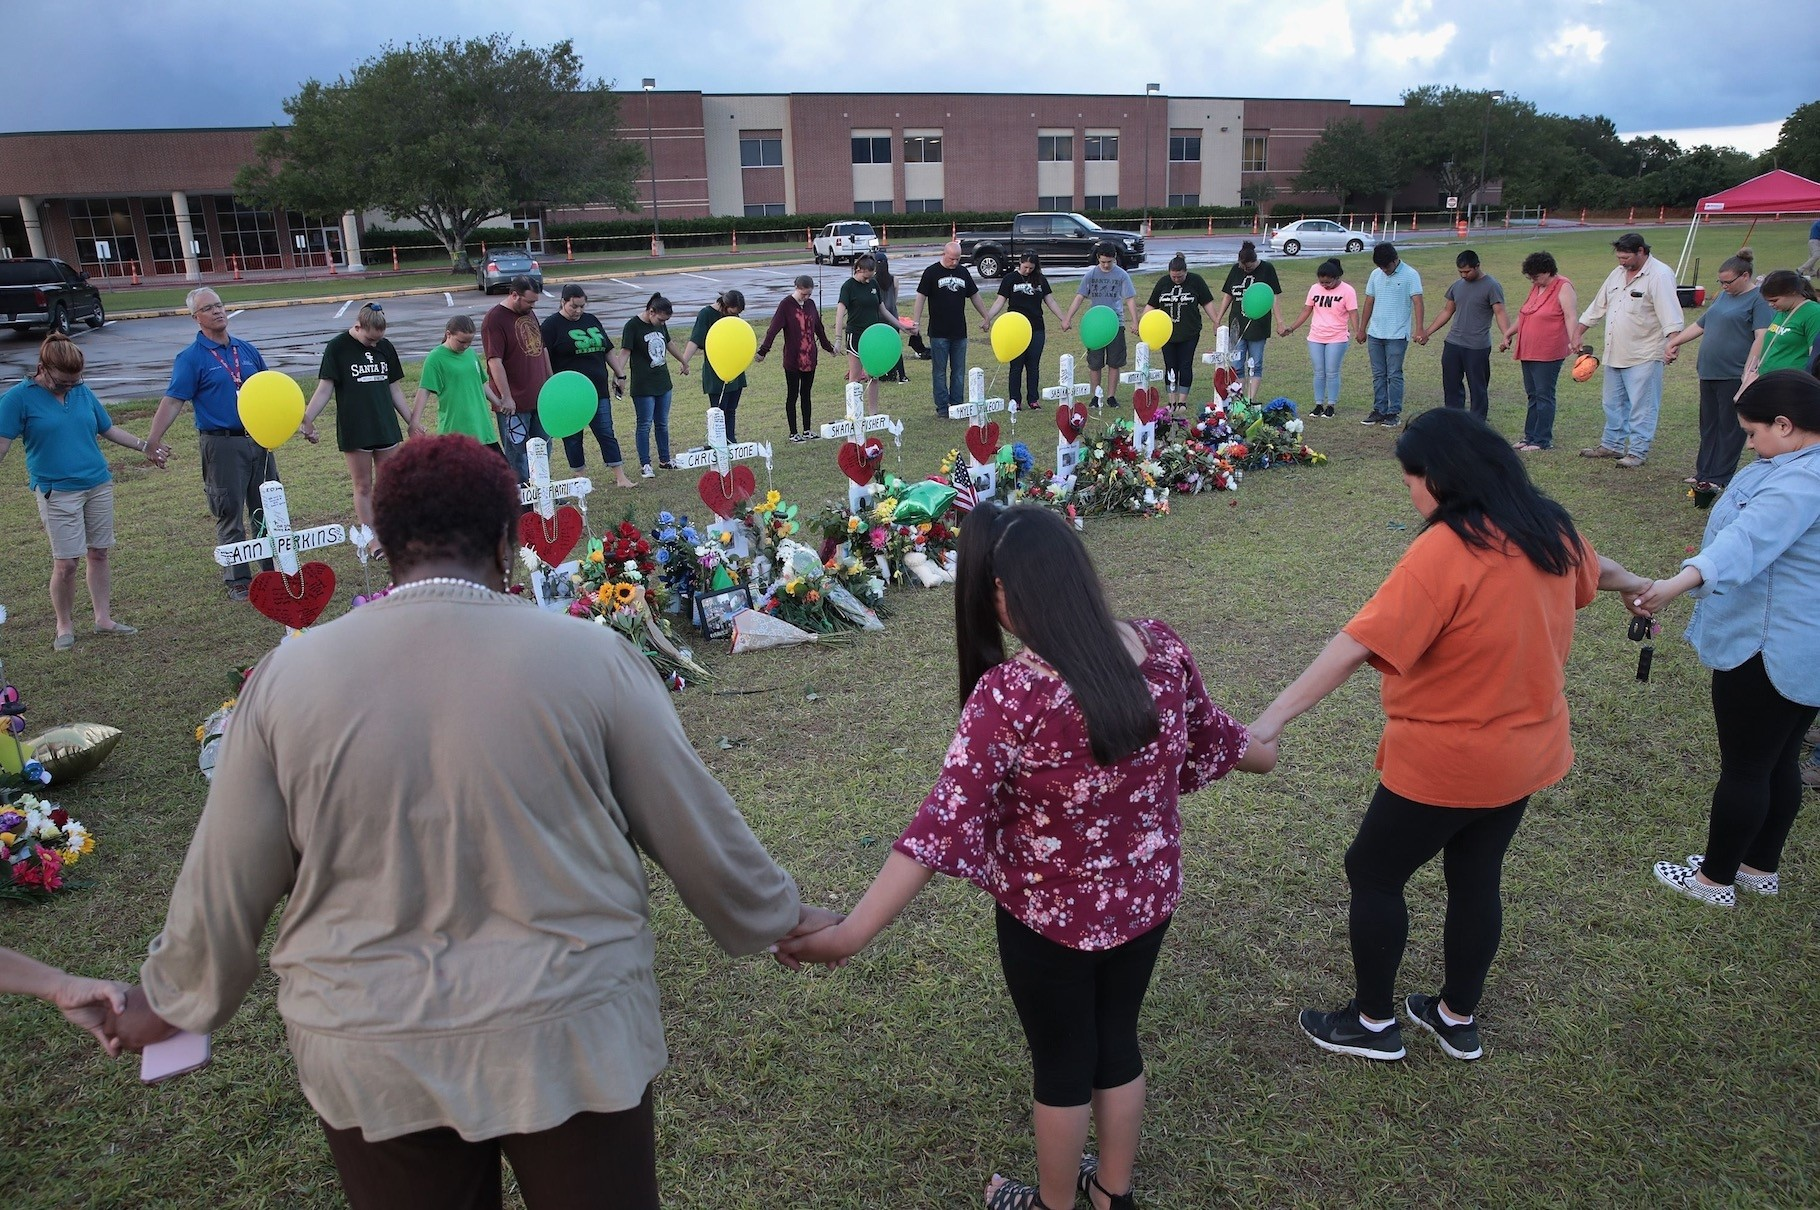 Mourners pray around a memorial in front of Santa Fe High School, Texas, May 21.